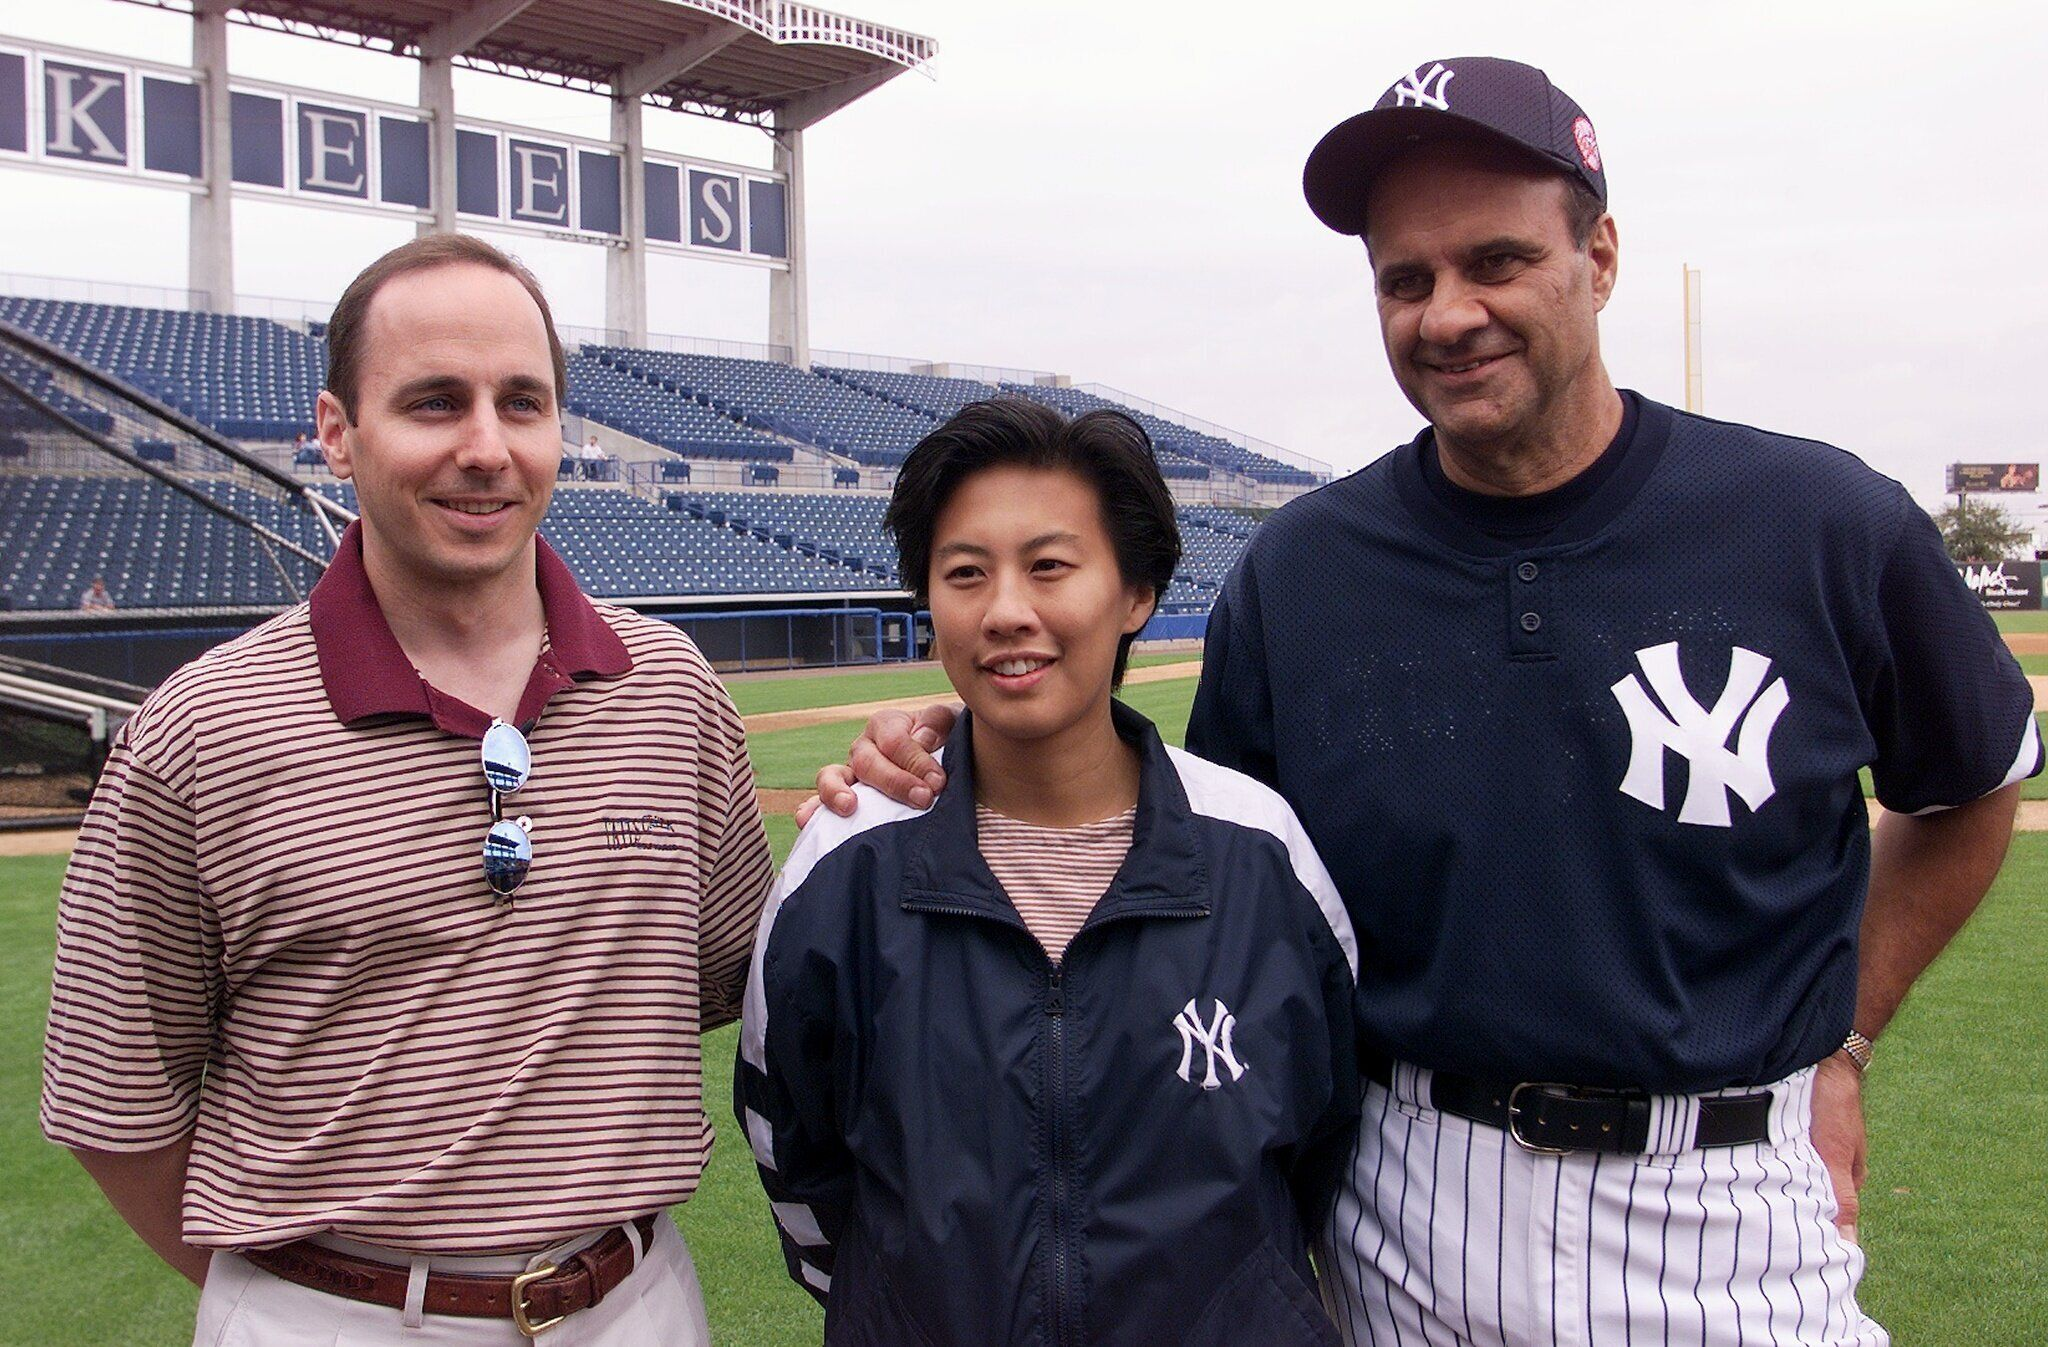 Kim Ng, then an executive with the Yankees, with general manager Brian Cashman and then manager Joe Torre around 2000.